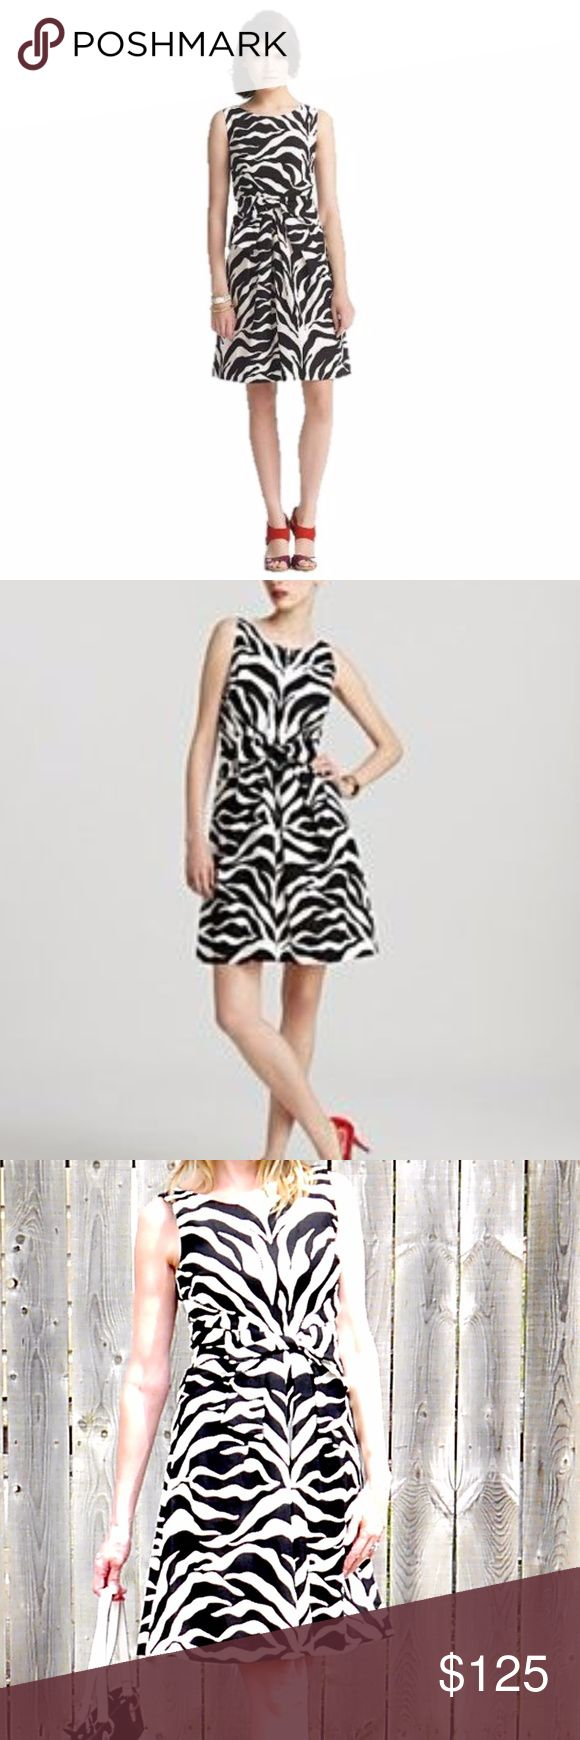 "Kate Spade Jillian Zebra Dress Size 6 This Spring 2012 edition of the kate spade new york jillian dress is made from lightweight linen and sports a wild zebra print. Black/white zebra print. Concealed zip closure at back. Size 6 Scoop neckline; sleeveless. Bow detail. Front slash pockets. A-line skirt. Back zip. 100% Linen. Lining 100% Cotton Waist: 30"" Length: 39"" Hip: 34"" Bust: 32"" kate spade Dresses Midi"